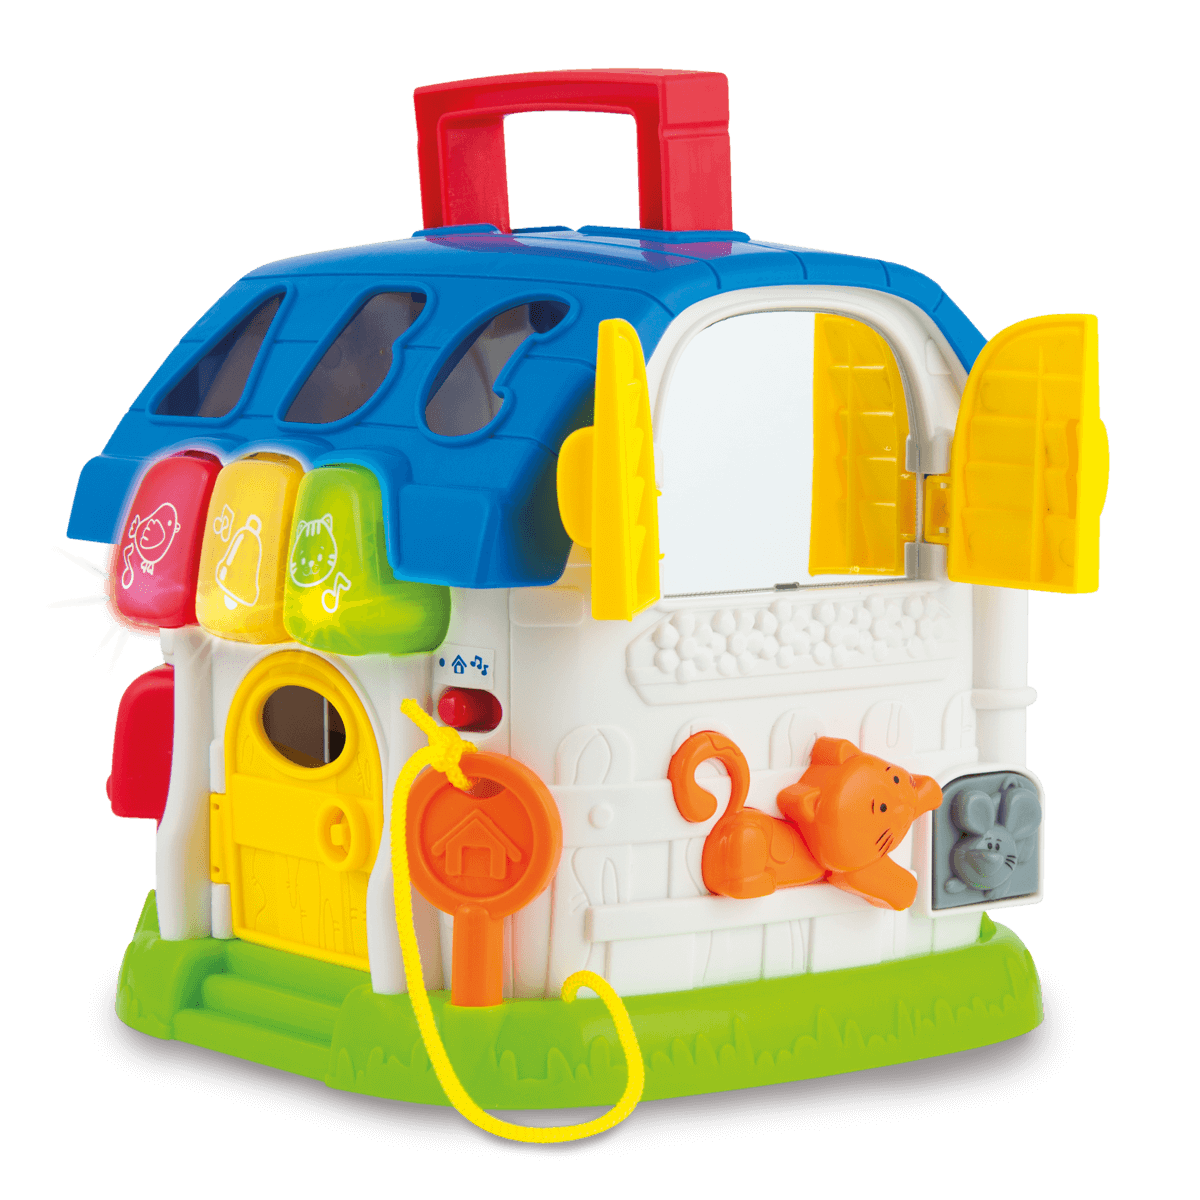 WinFun Sort and Learn Activity House from Early Learning Center